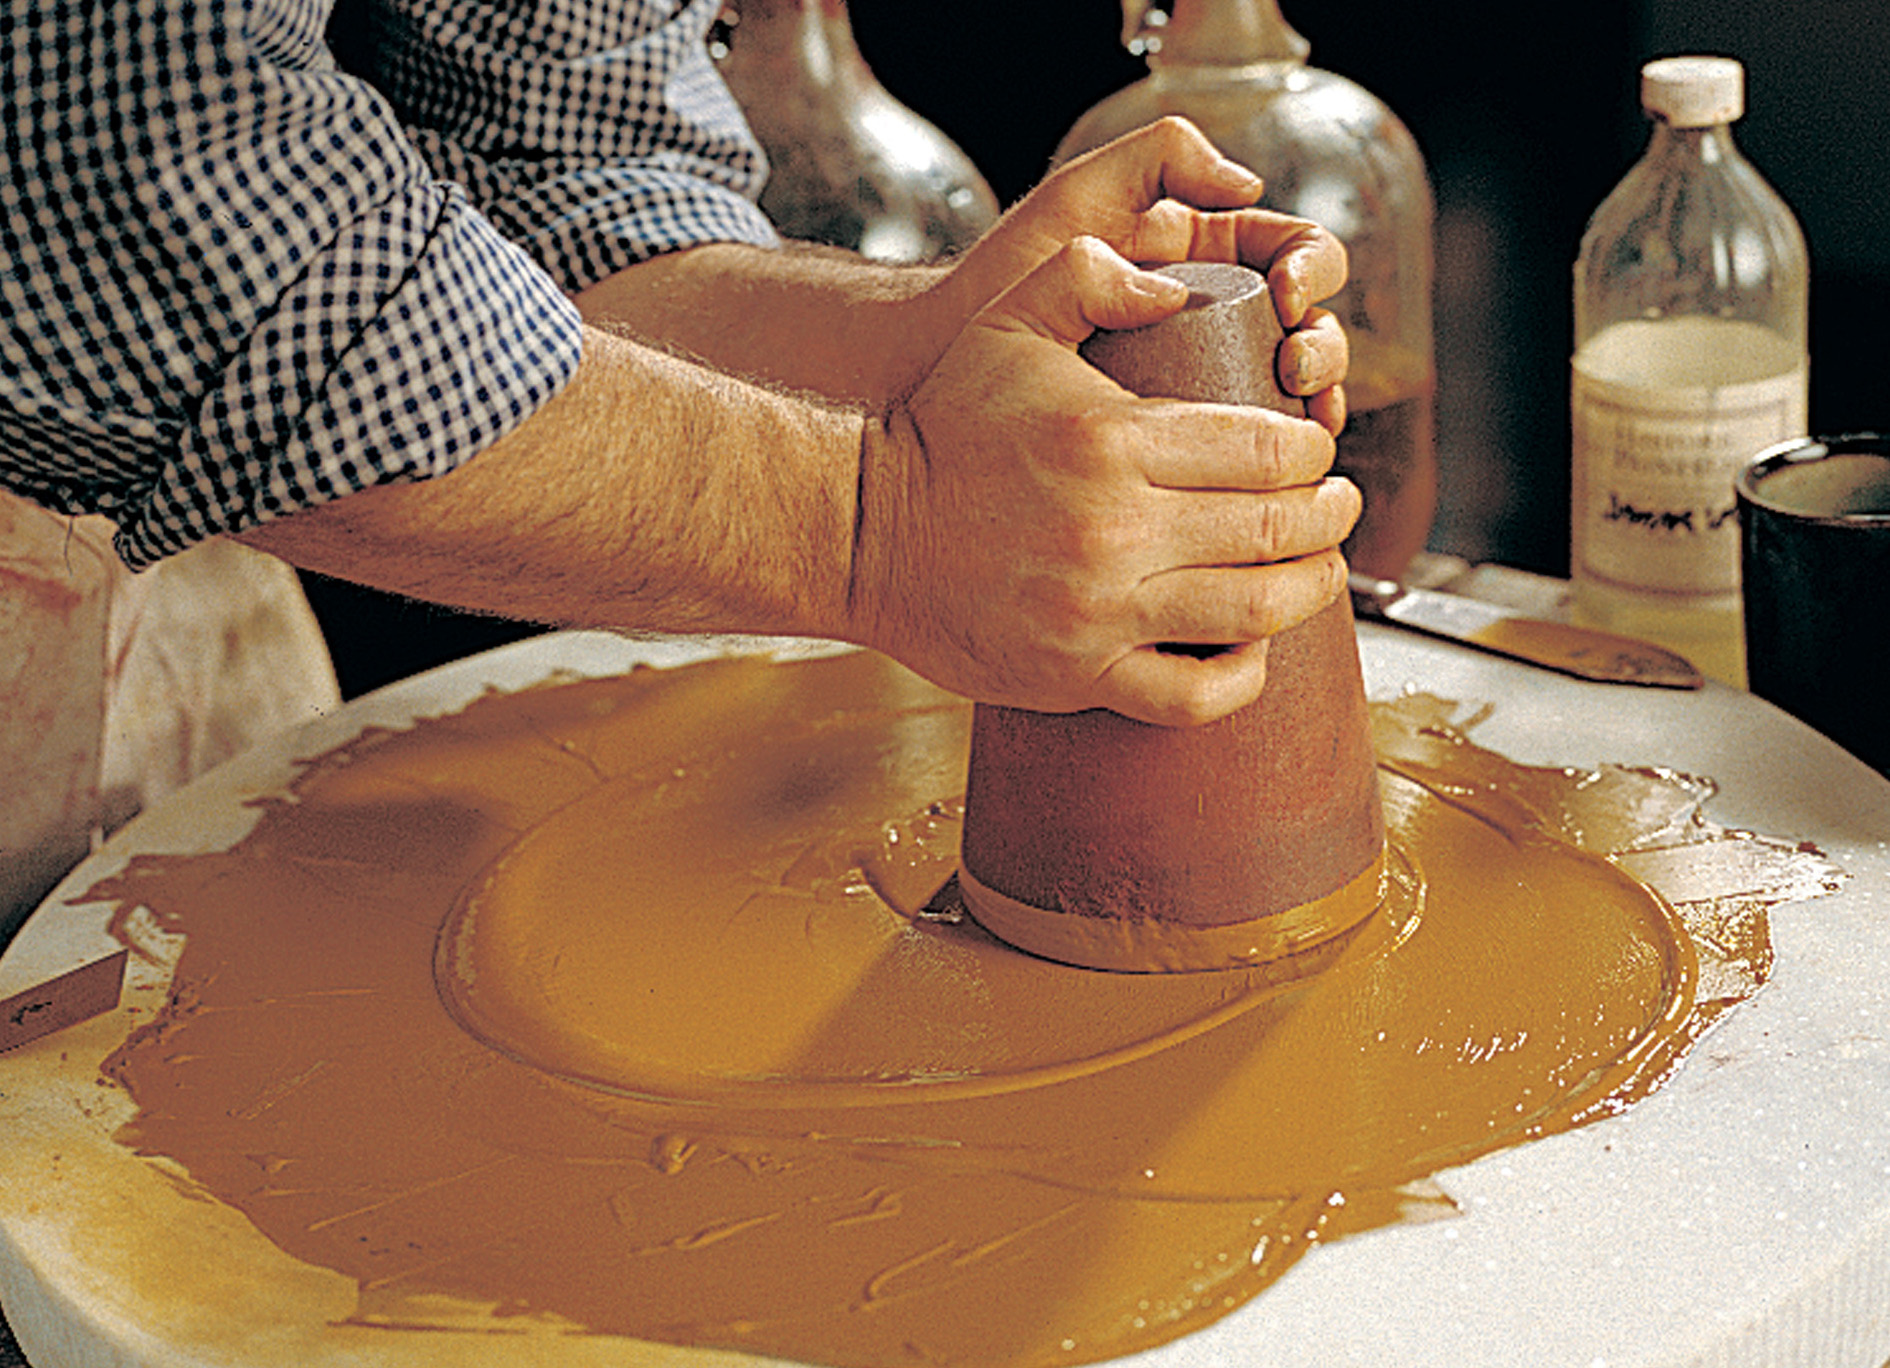 Before pre-mixed, store-bought paints were common, colors were mixed by hand. Here a muller is used to grind dry pigments into the binder (e.g., oil, casein).